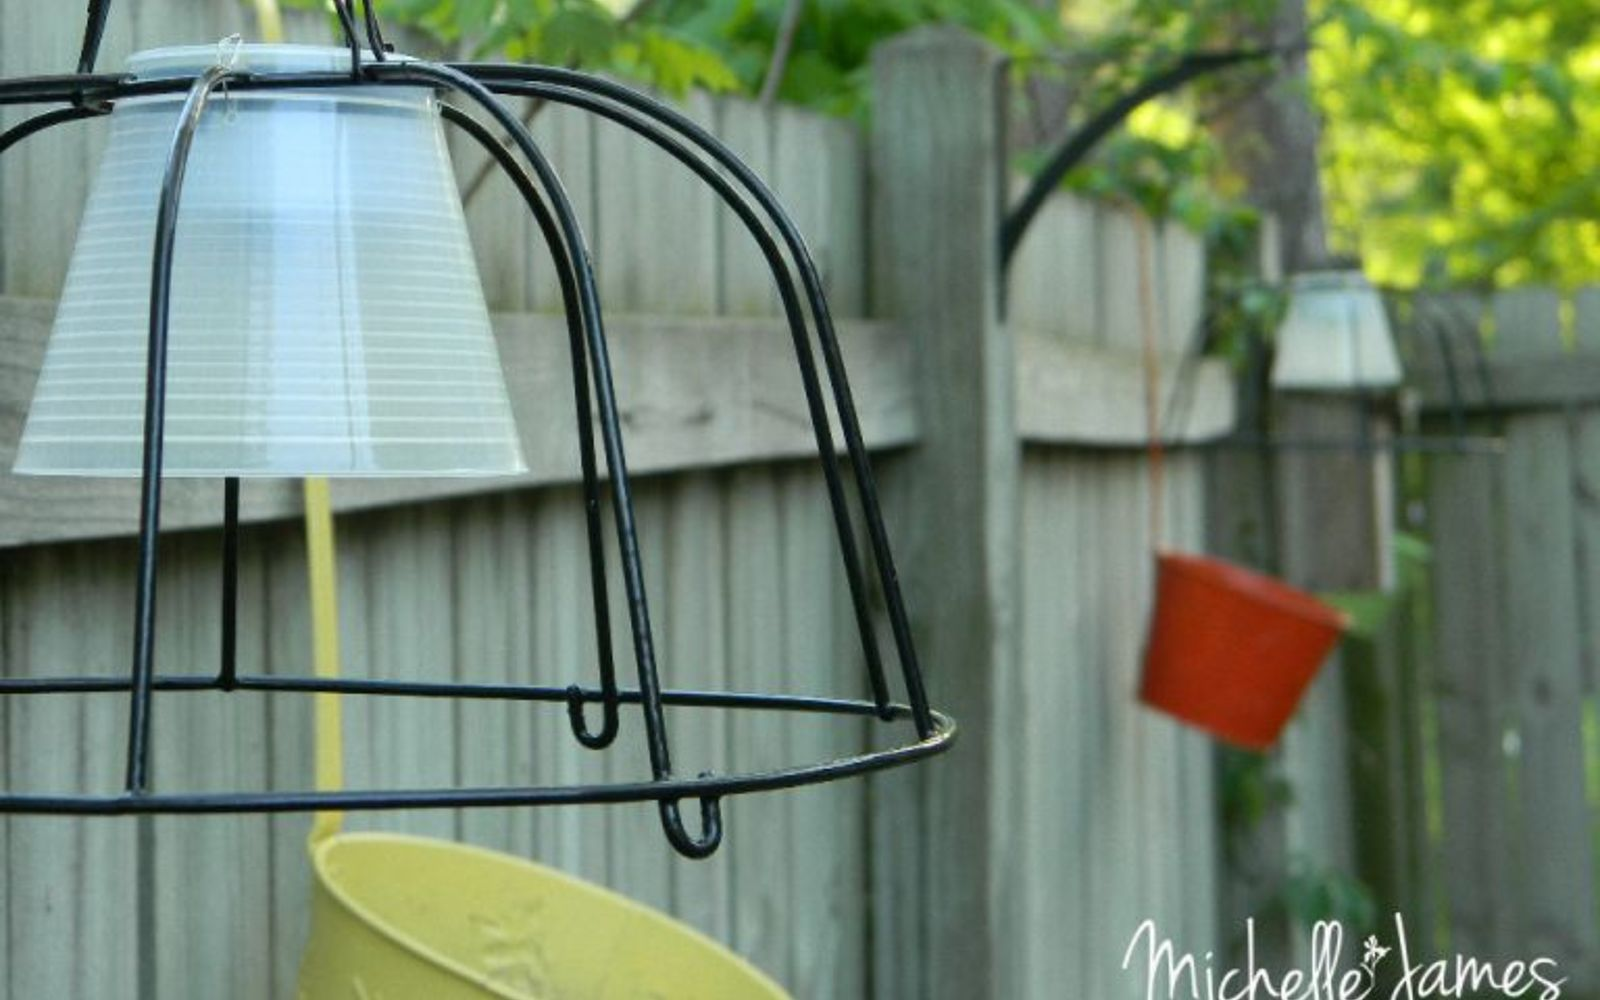 s 16 stunning ways for you to add solar lighting, Combine A Hanging Planter And Solar Lamps